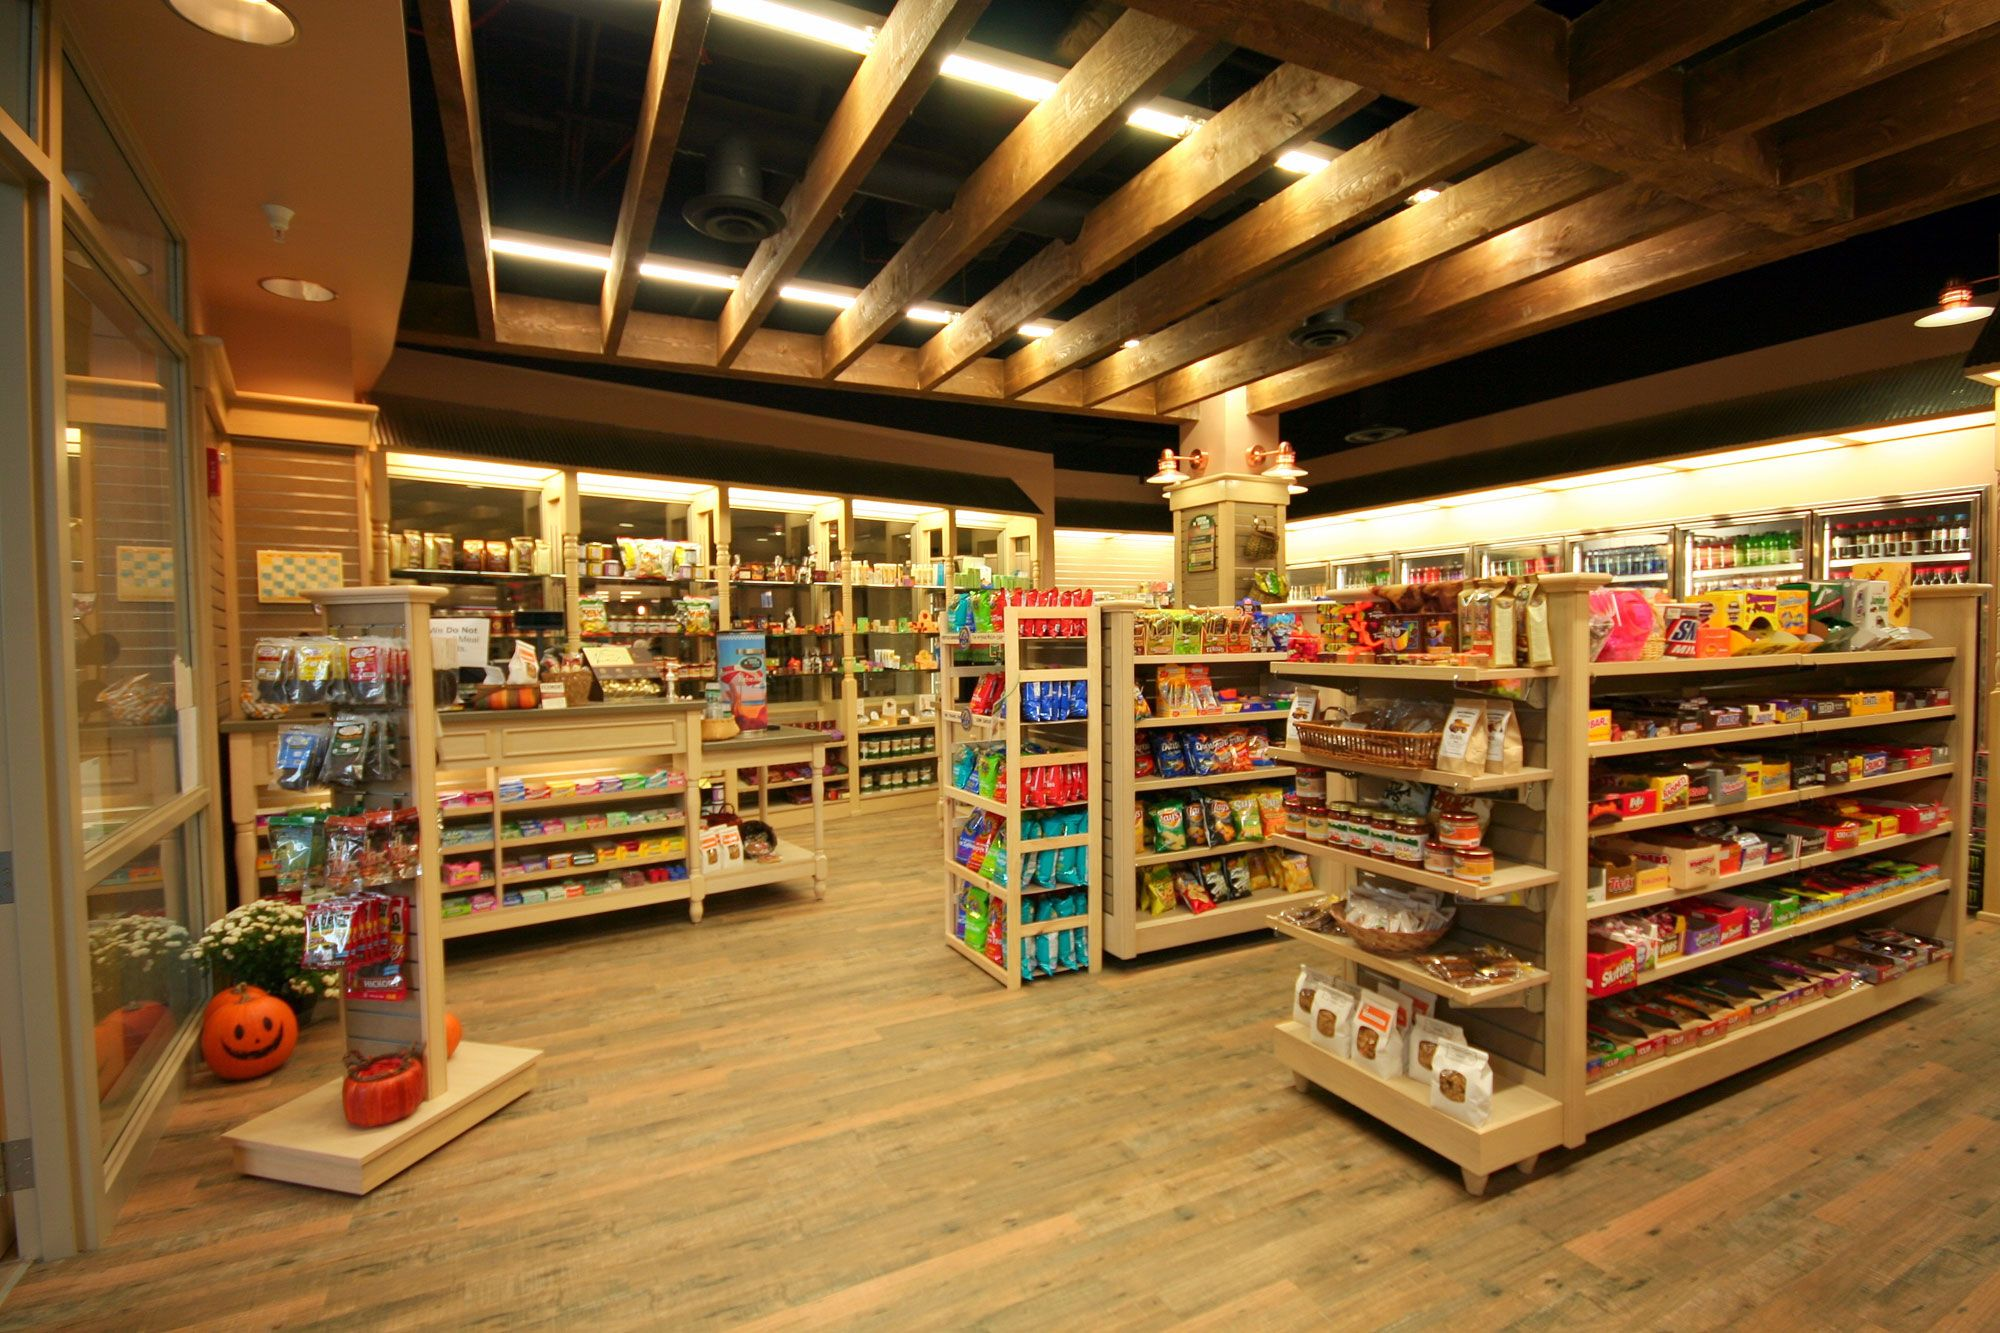 General Store Design Ideas - Year of Clean Water